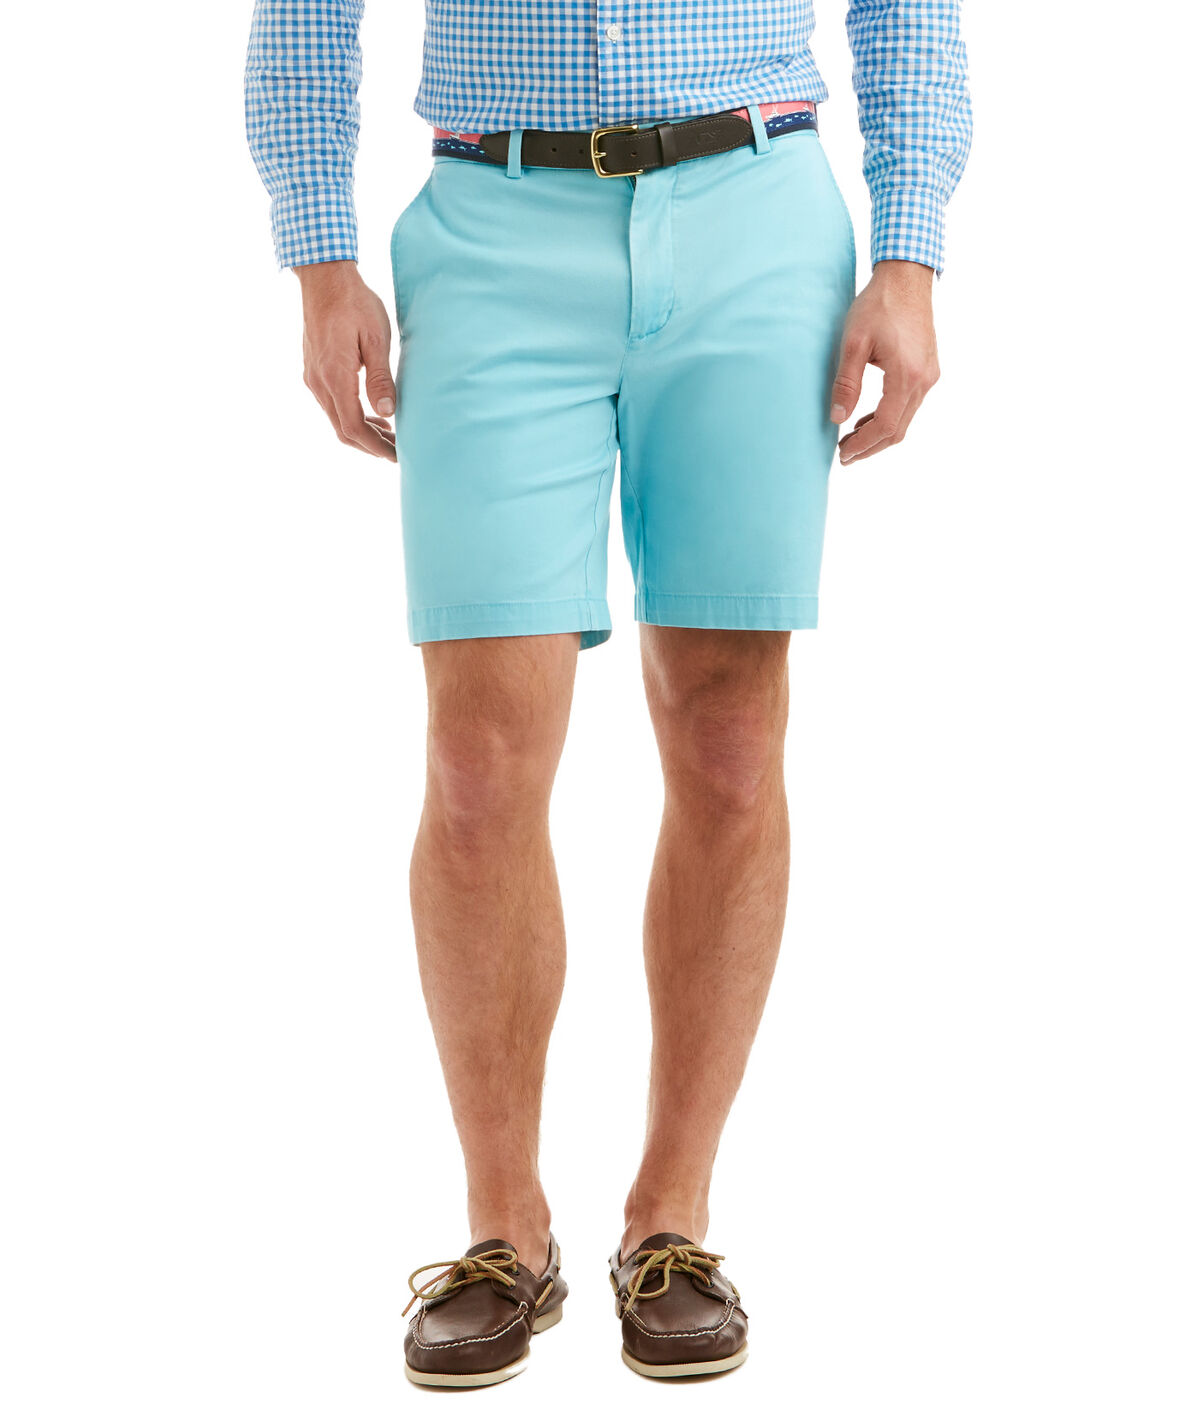 Modern colors like salmon and ice blue add a vibrant hint to your ensemble, while classic hues such as army green and khaki always match. Pair shorts with a t-shirt for a day on a boat or running errands.